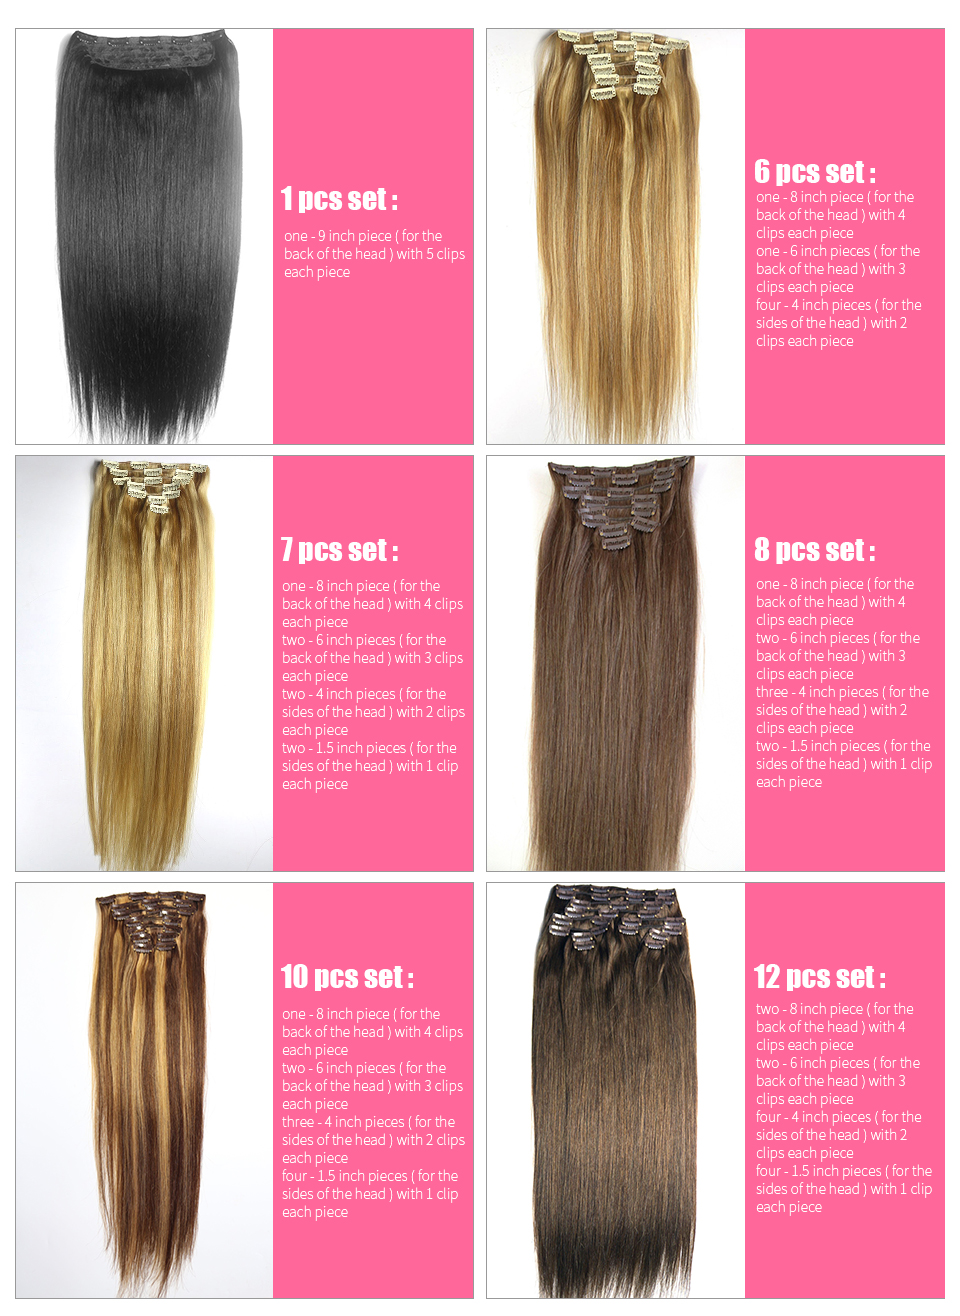 ZZHAIR 16″ 41cm 100% Brazilian Hair bandage Ponytail Horsetail 60g Clip In Human Hair Extensions Straight hair Non-remy